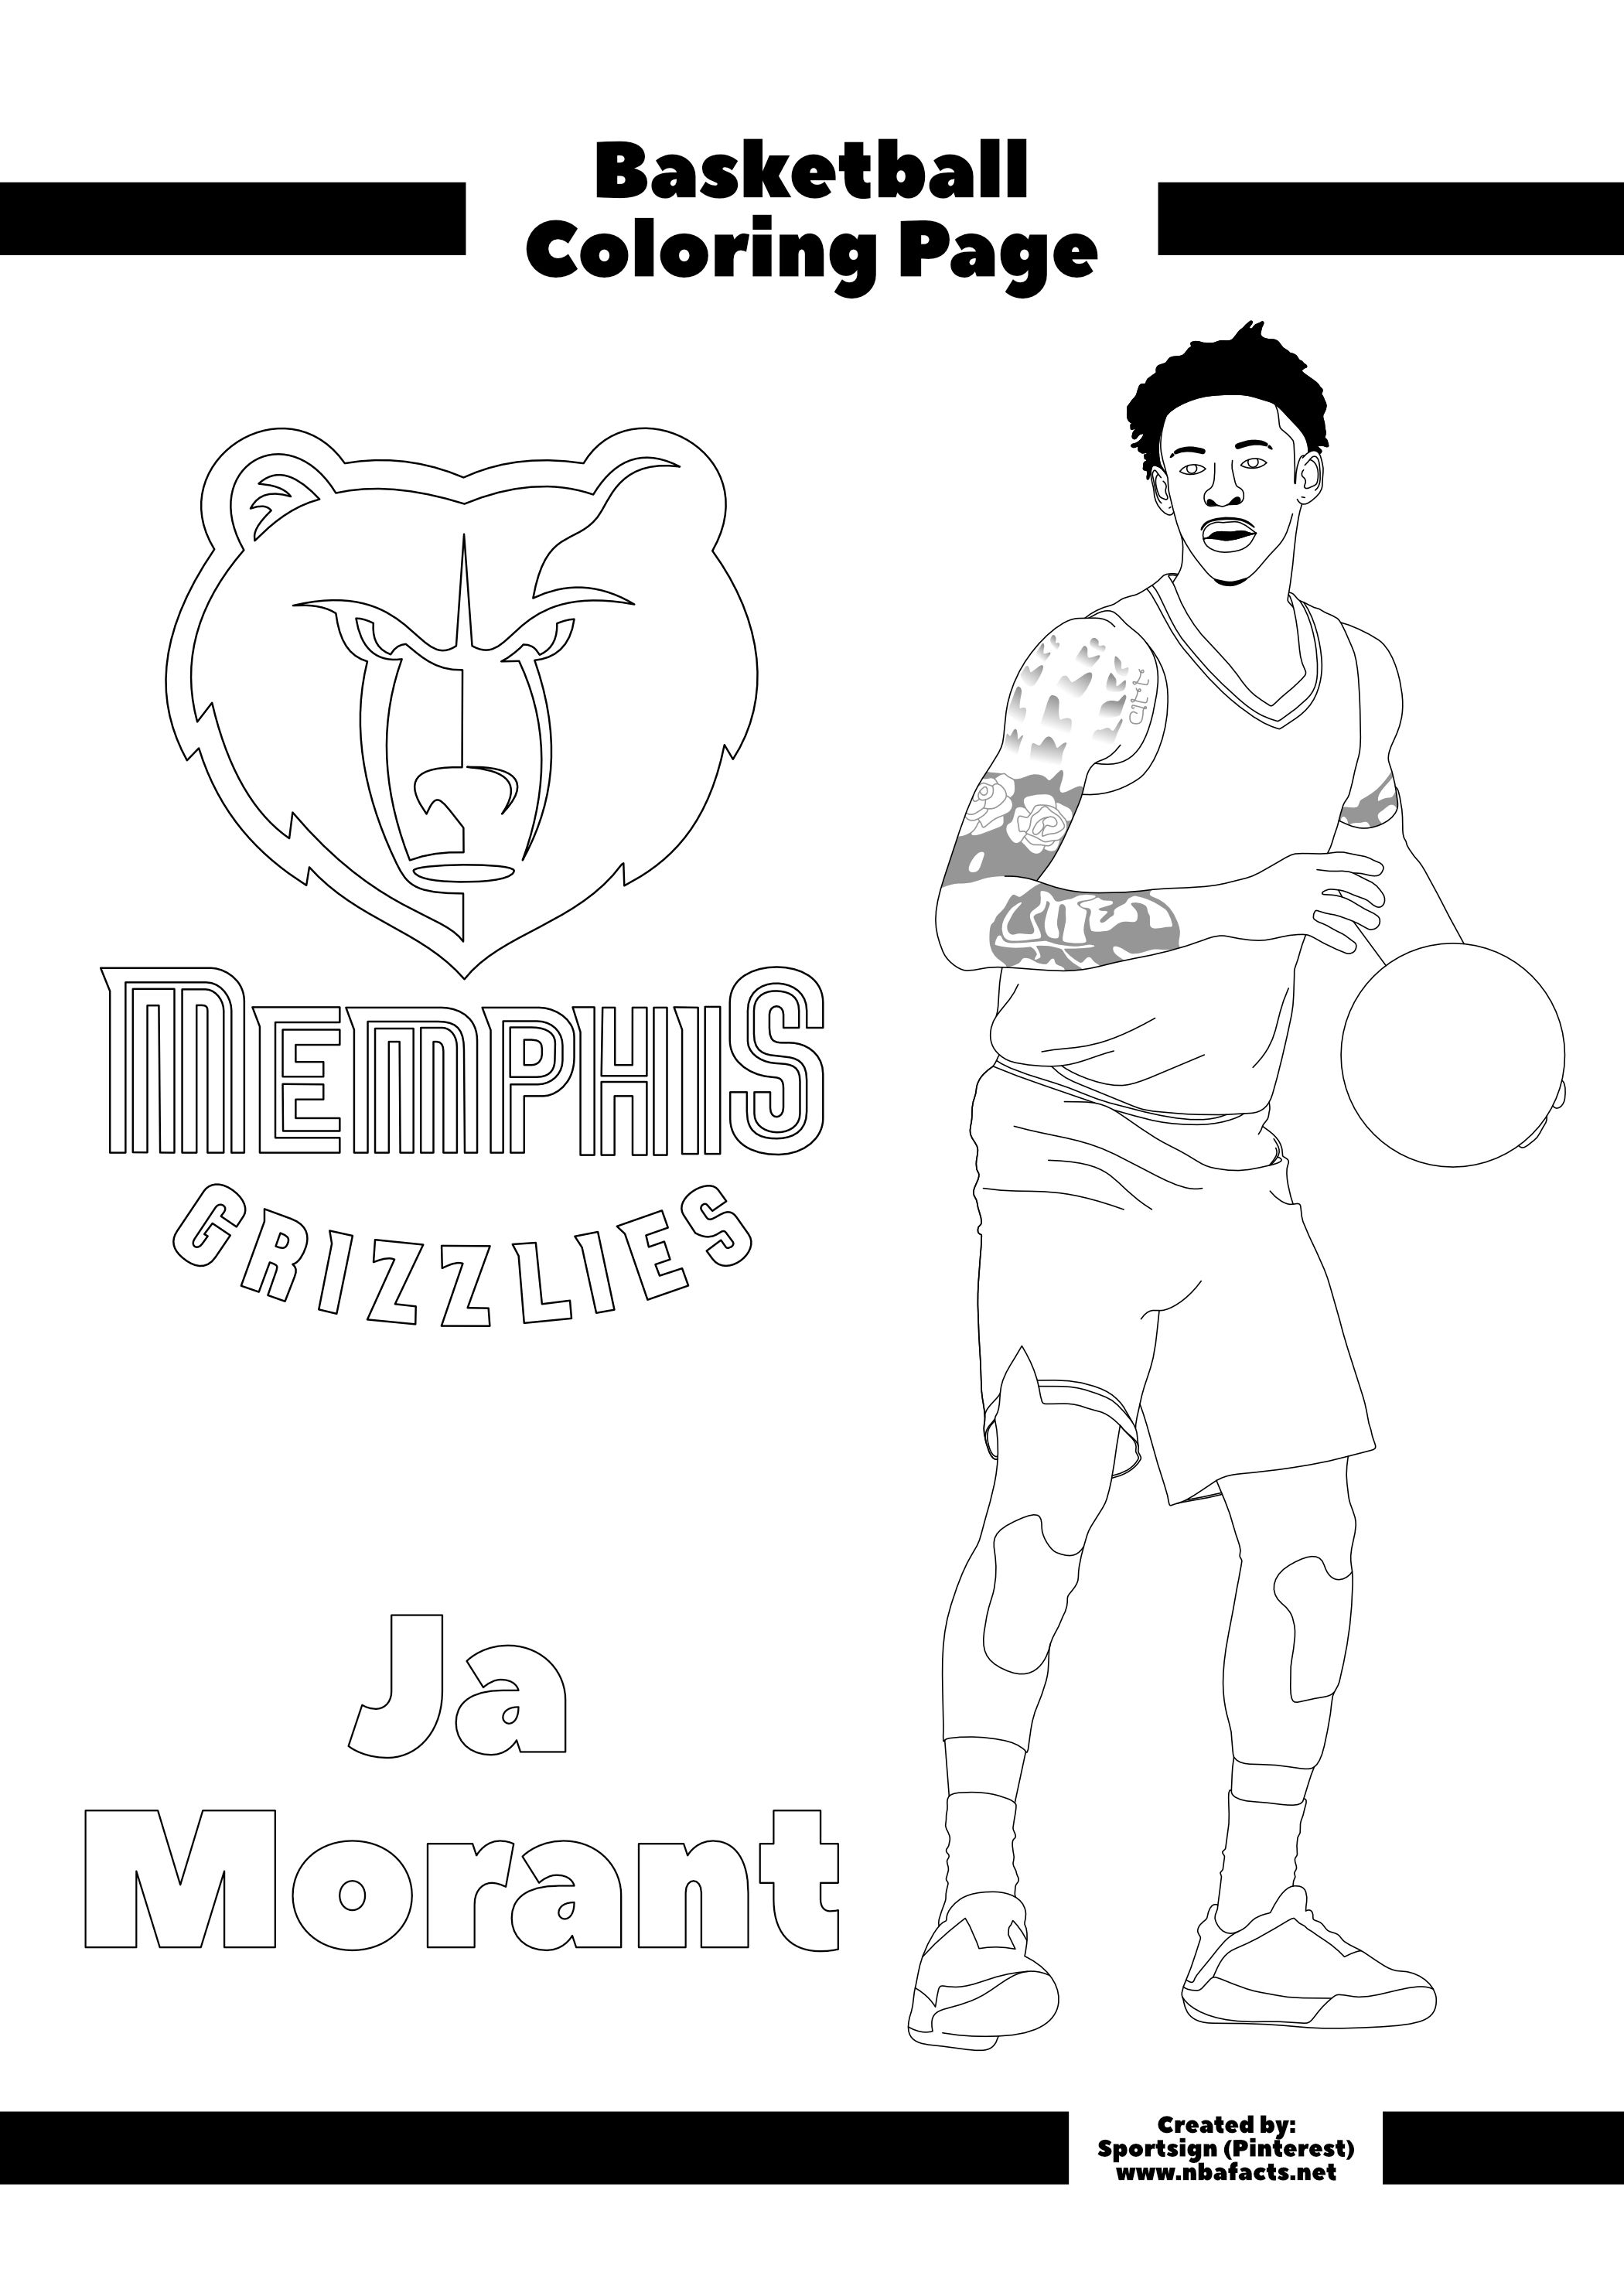 Free Nba Coloring Sheets In 2020 Coloring Sheets Coloring